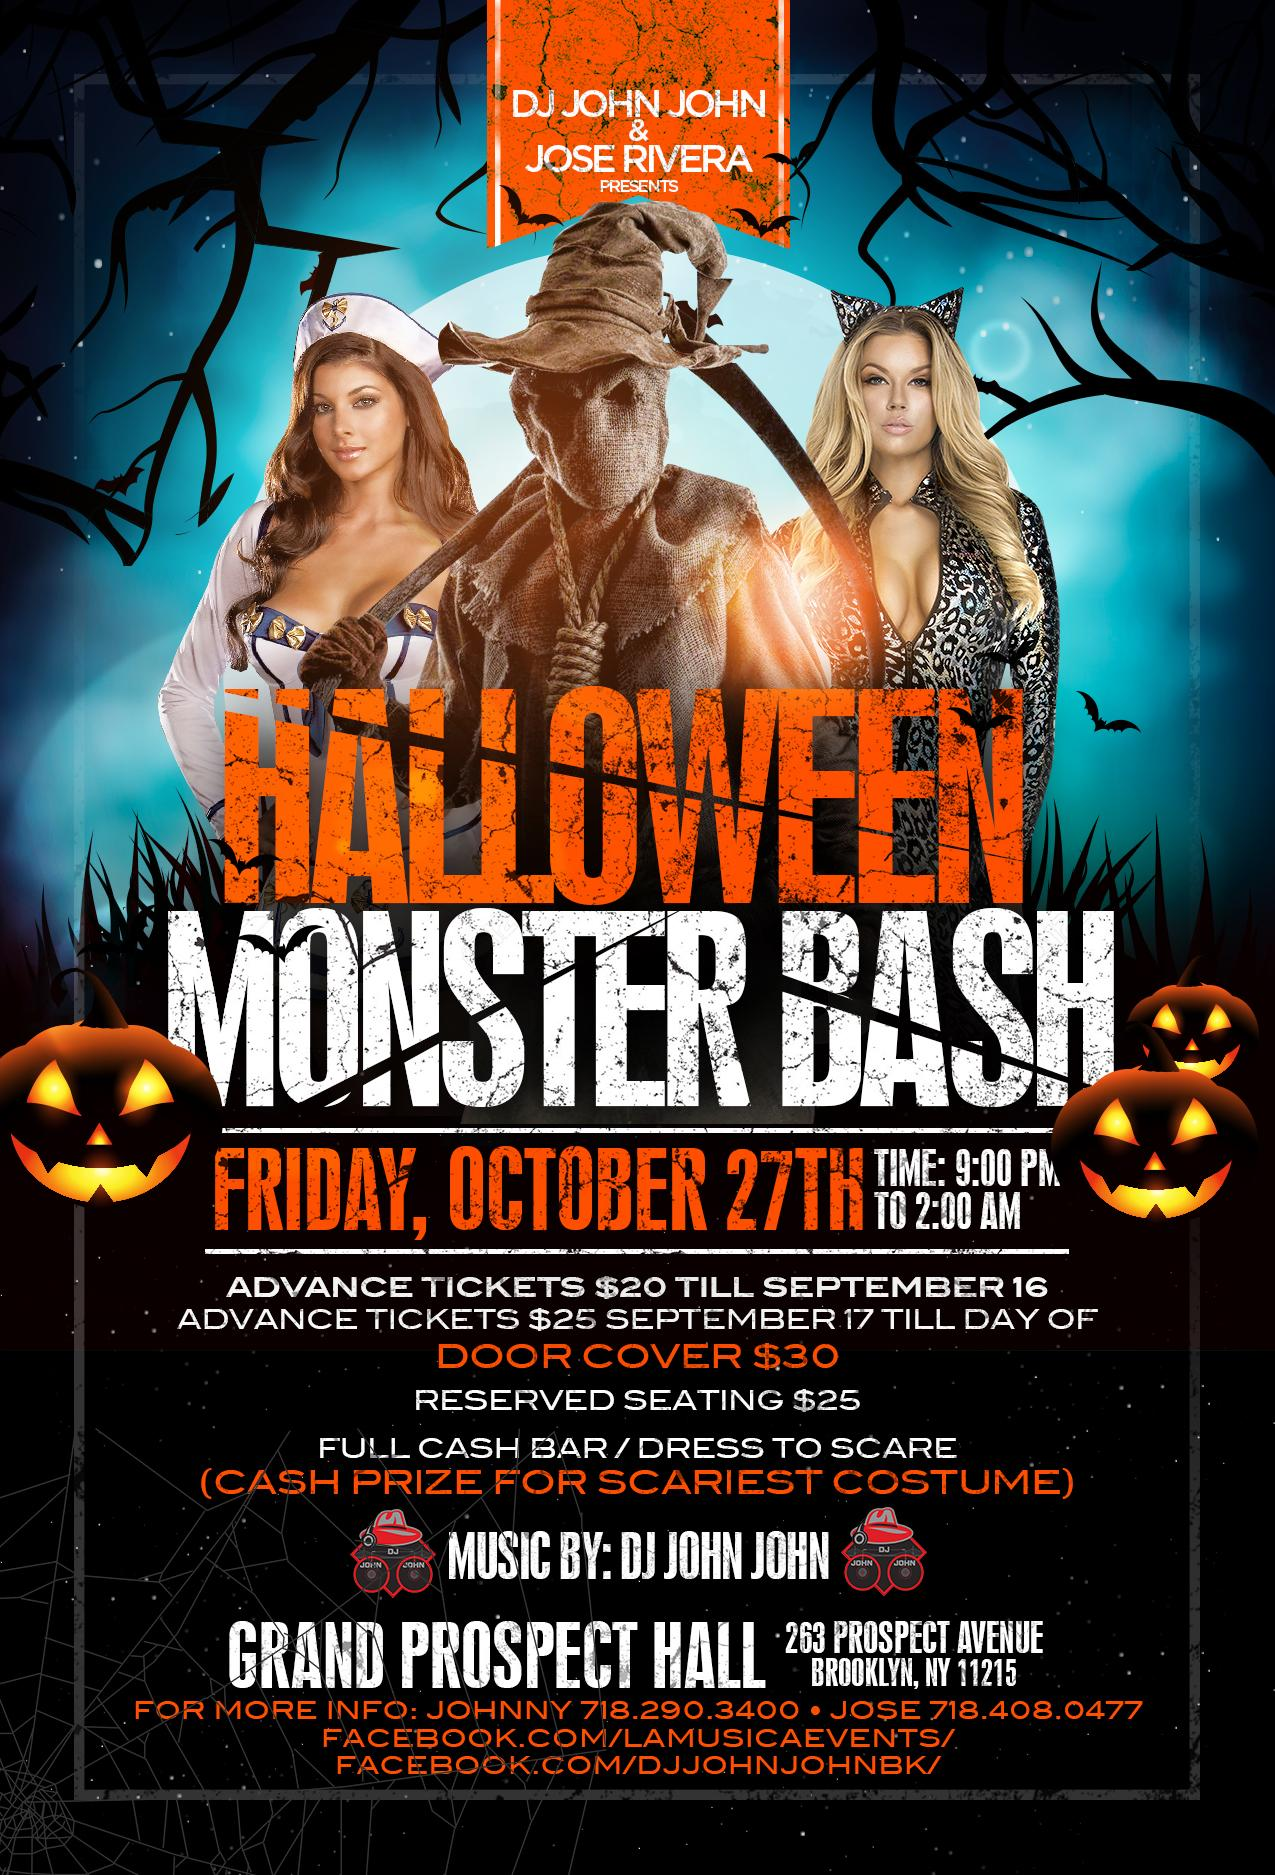 Costume Casino Party @ The Bowery Hotel, New York - 27 OCT 2017